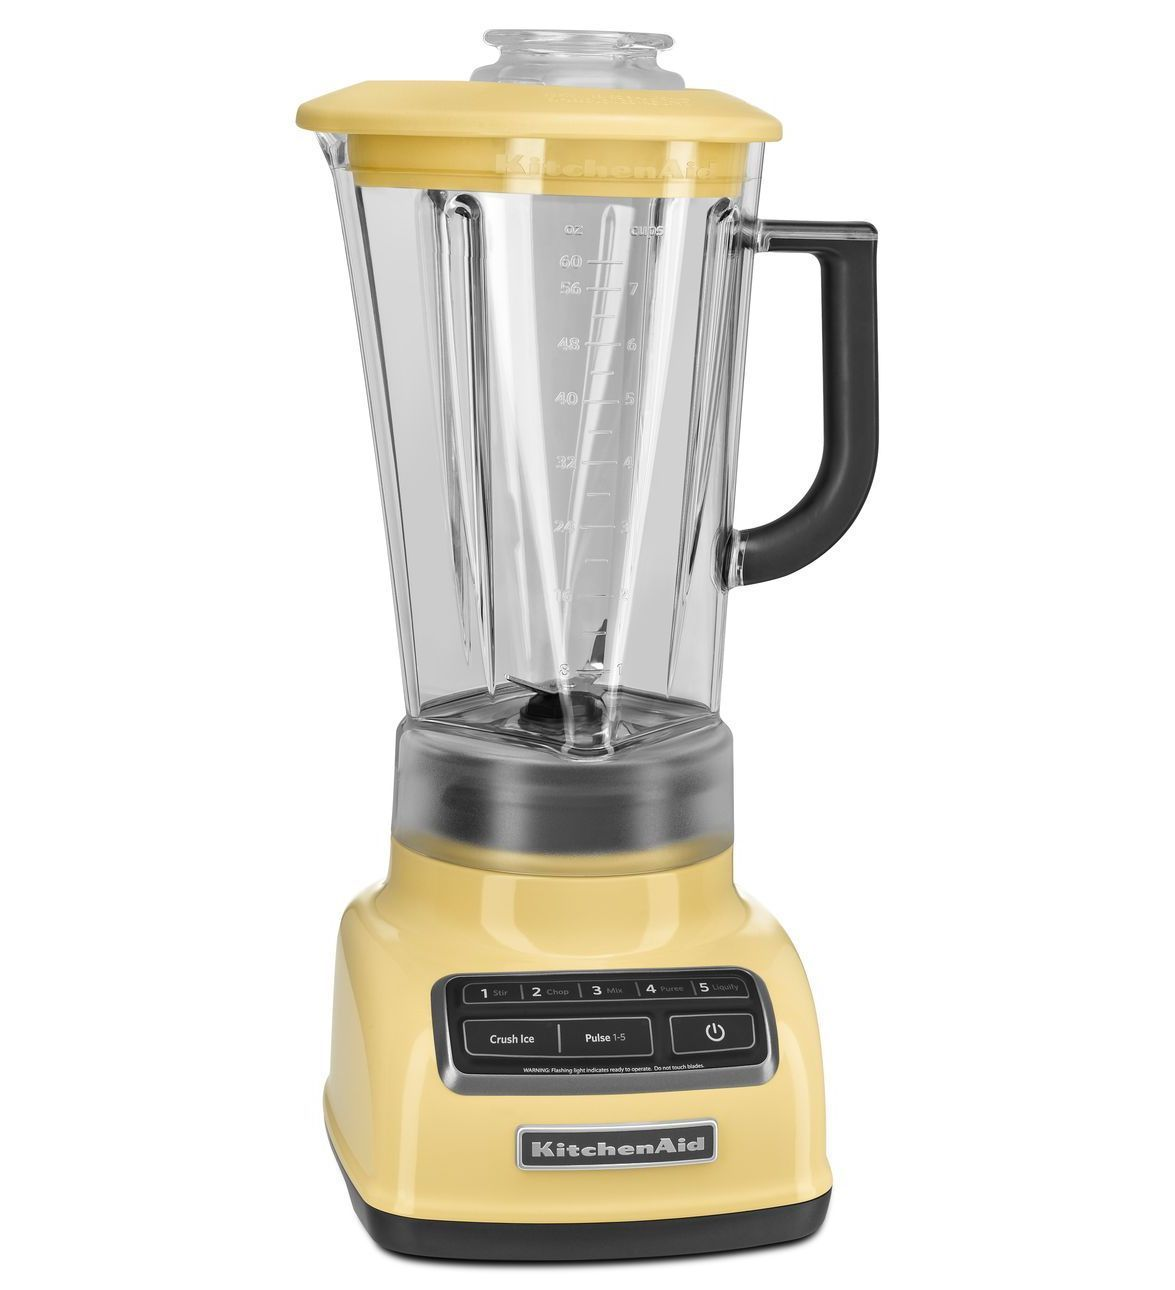 No need to buy a 200 baby food maker great for beginners